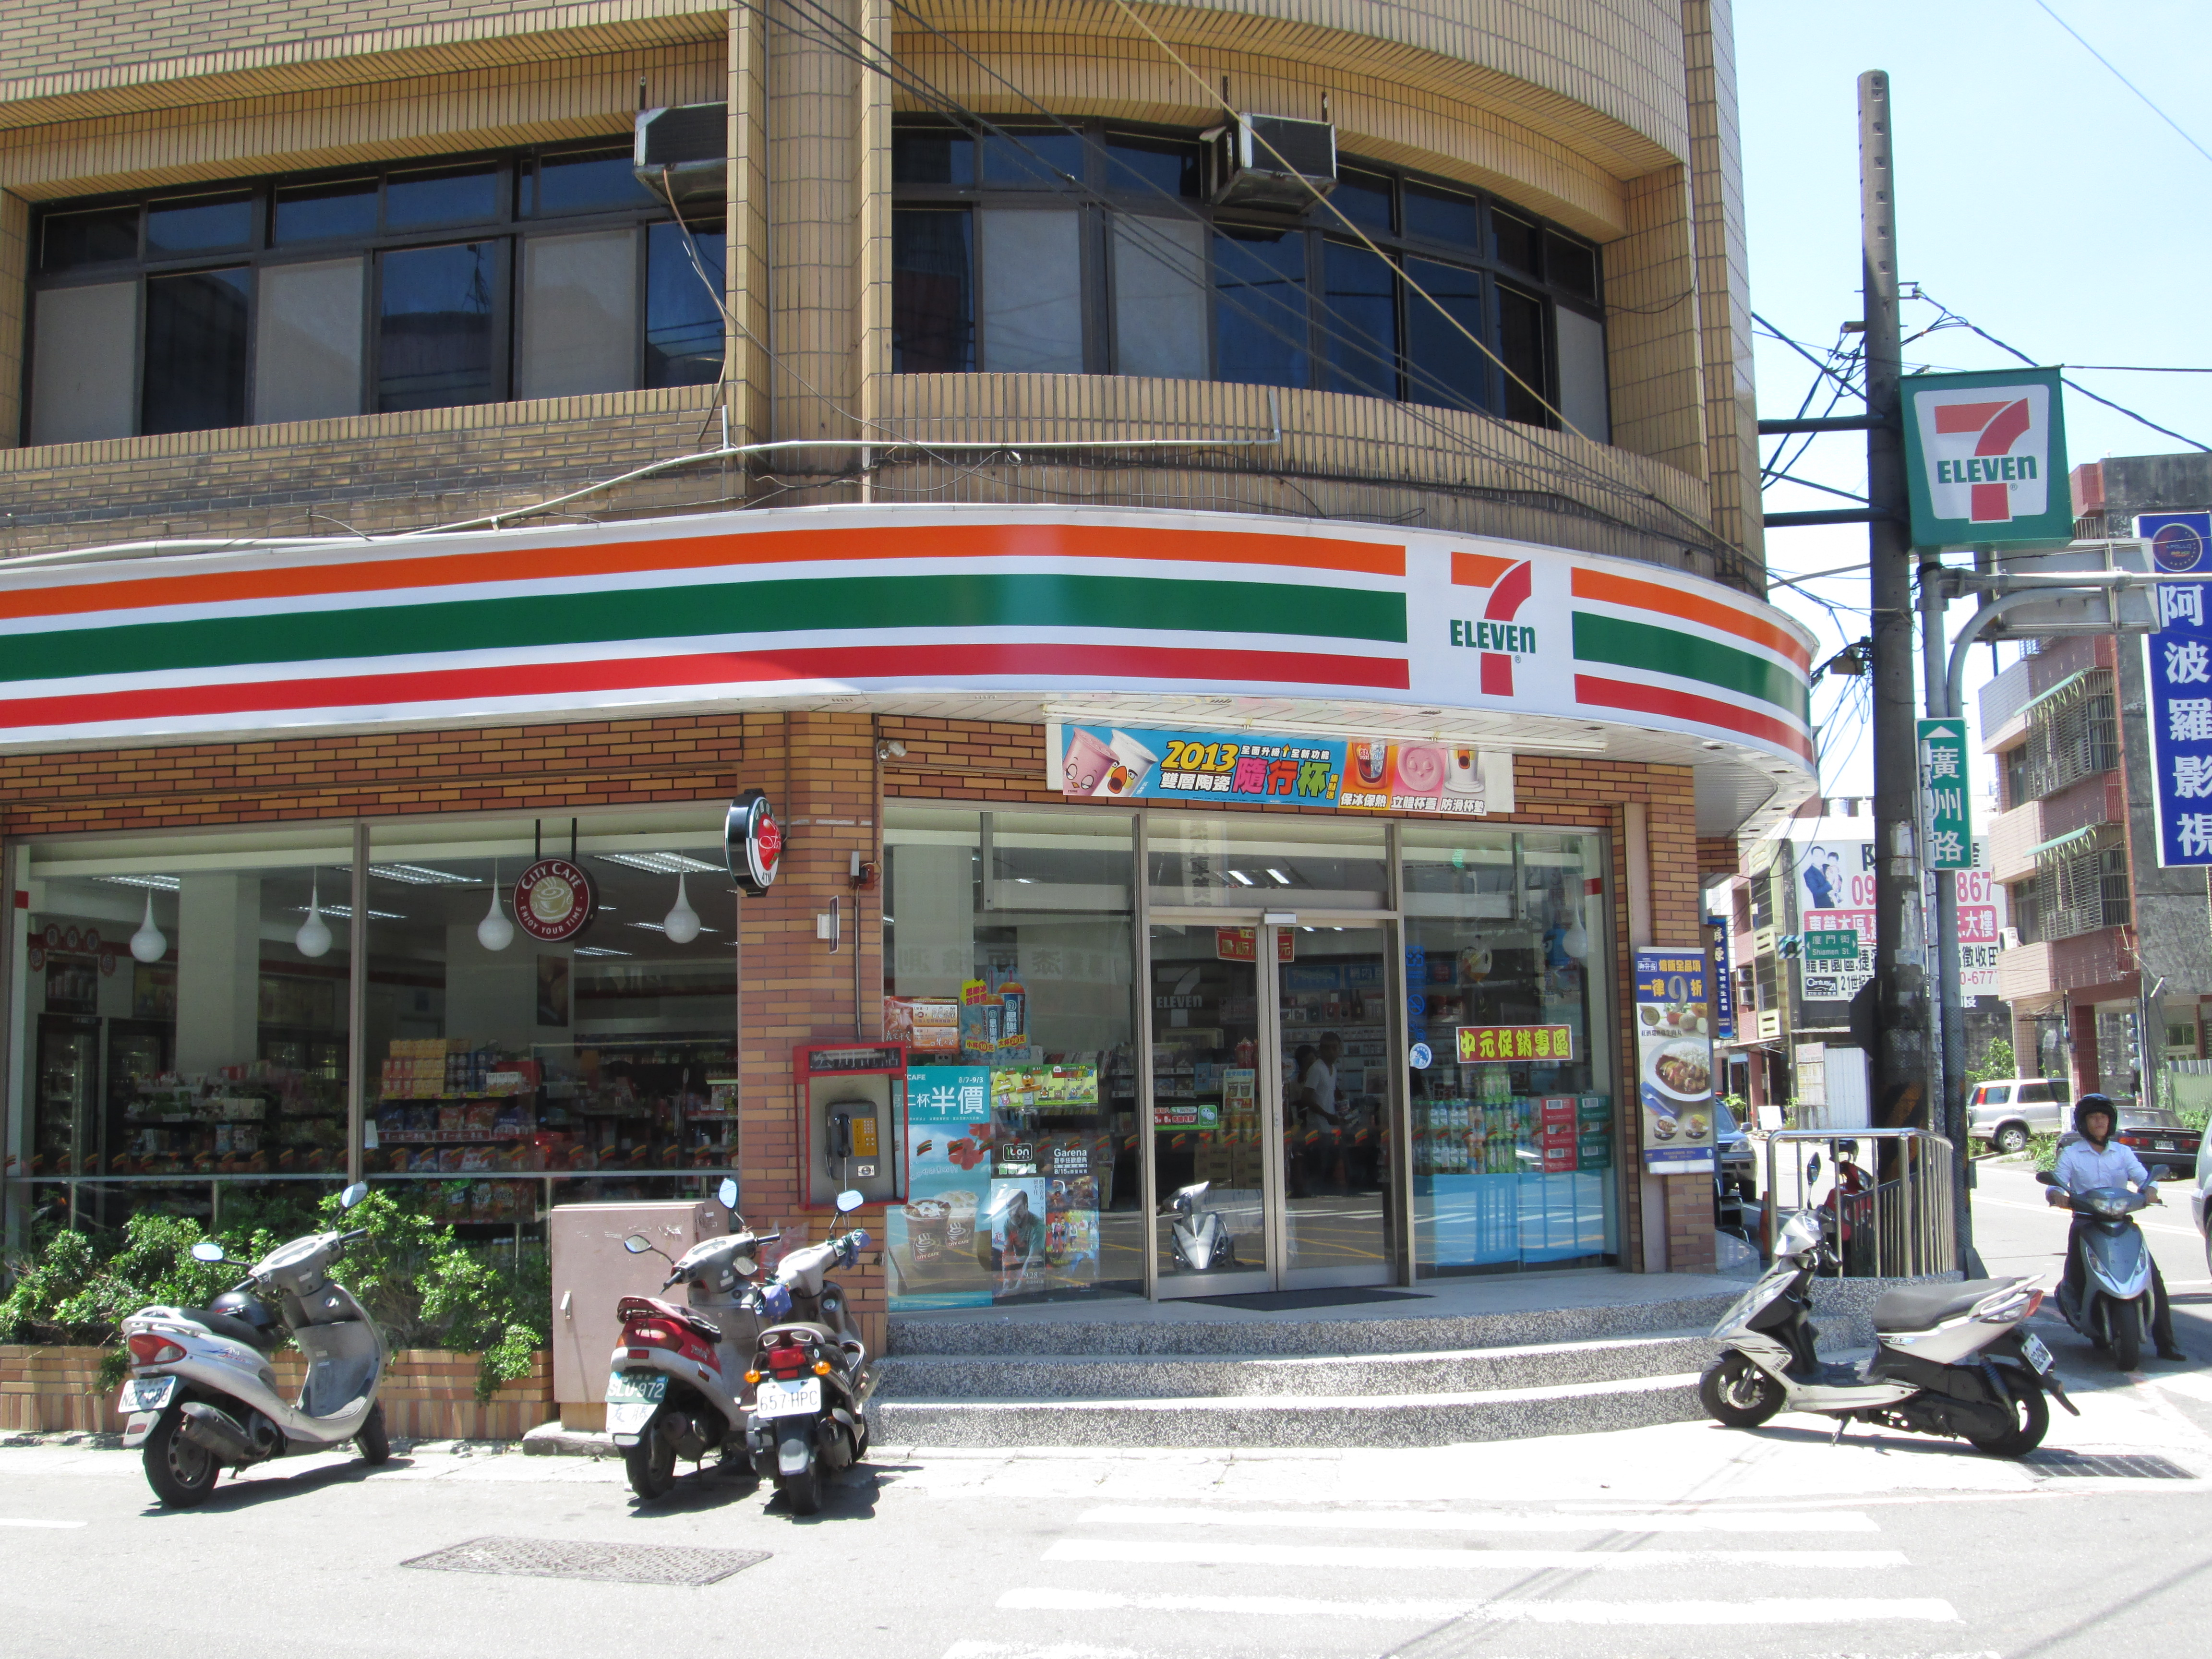 7 11 taiwan 7-eleven in taiwan michael lewis kuan yu chen qiwei xie yuming li design by dóri sirály for prezi mission and vision at 7-eleven, our purpose and mission is to make life a little easier for our guests by being where they need us, whenever they need us.